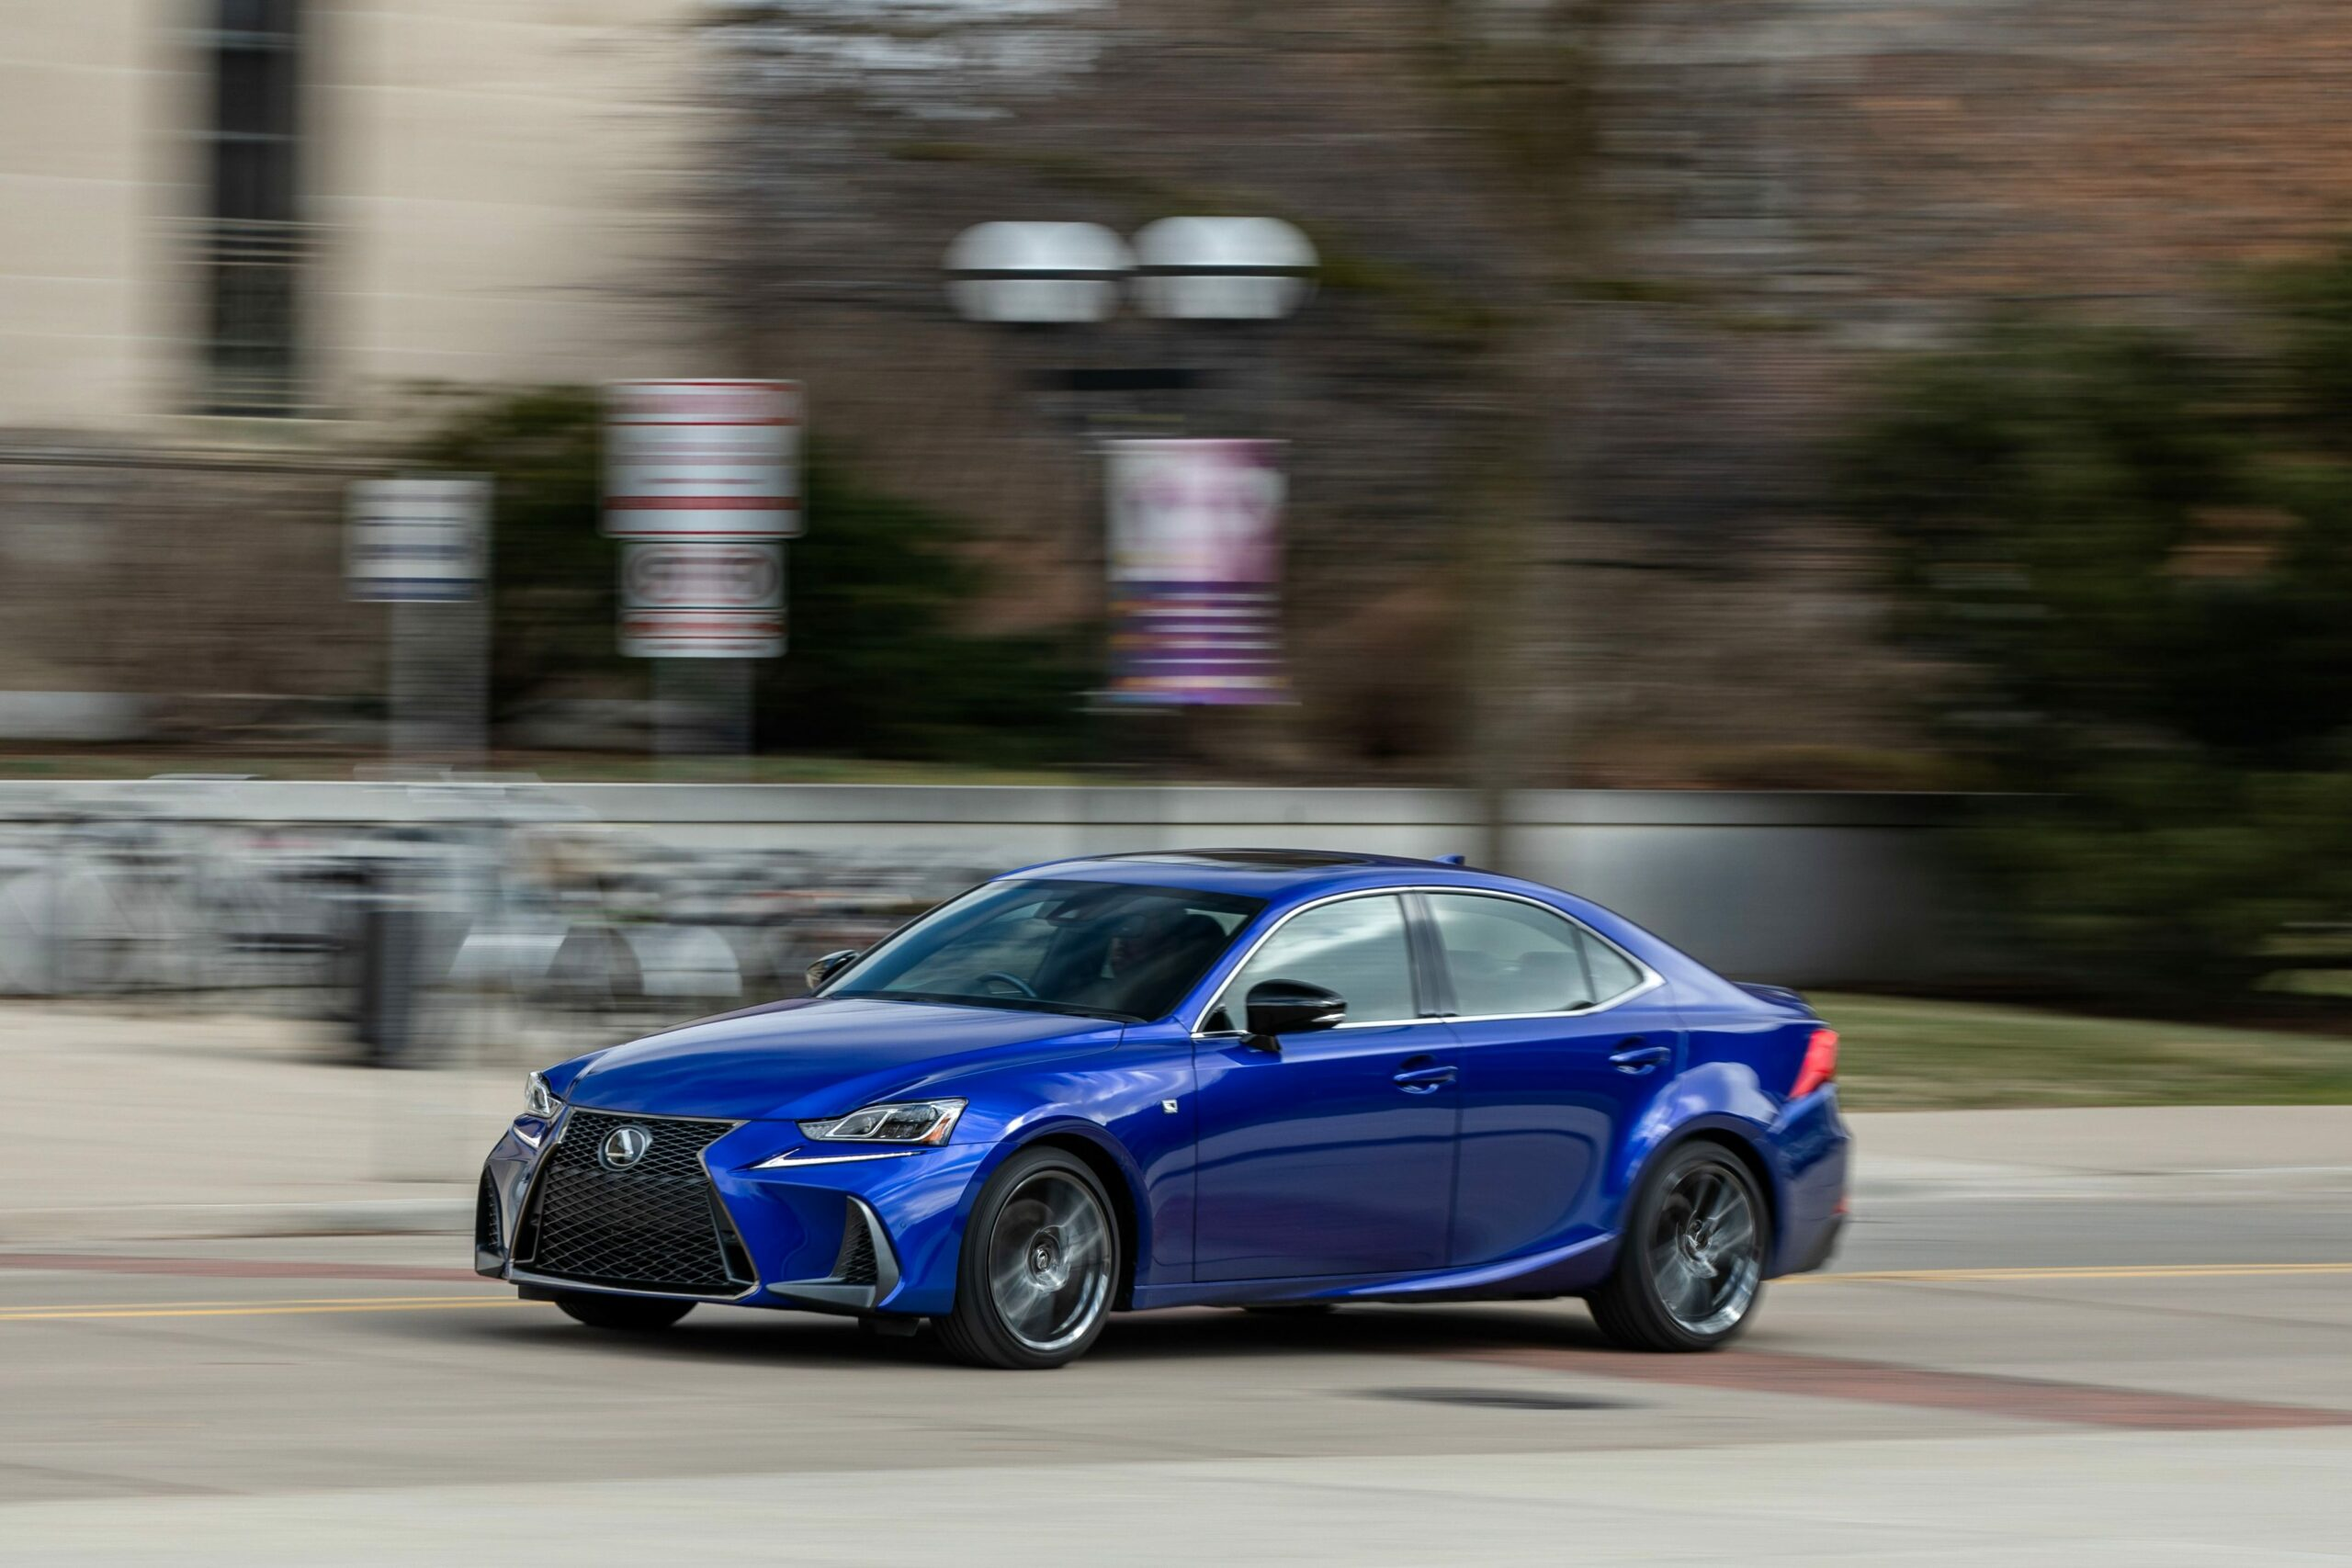 lexus is 350 f sport 2020 Price and Review